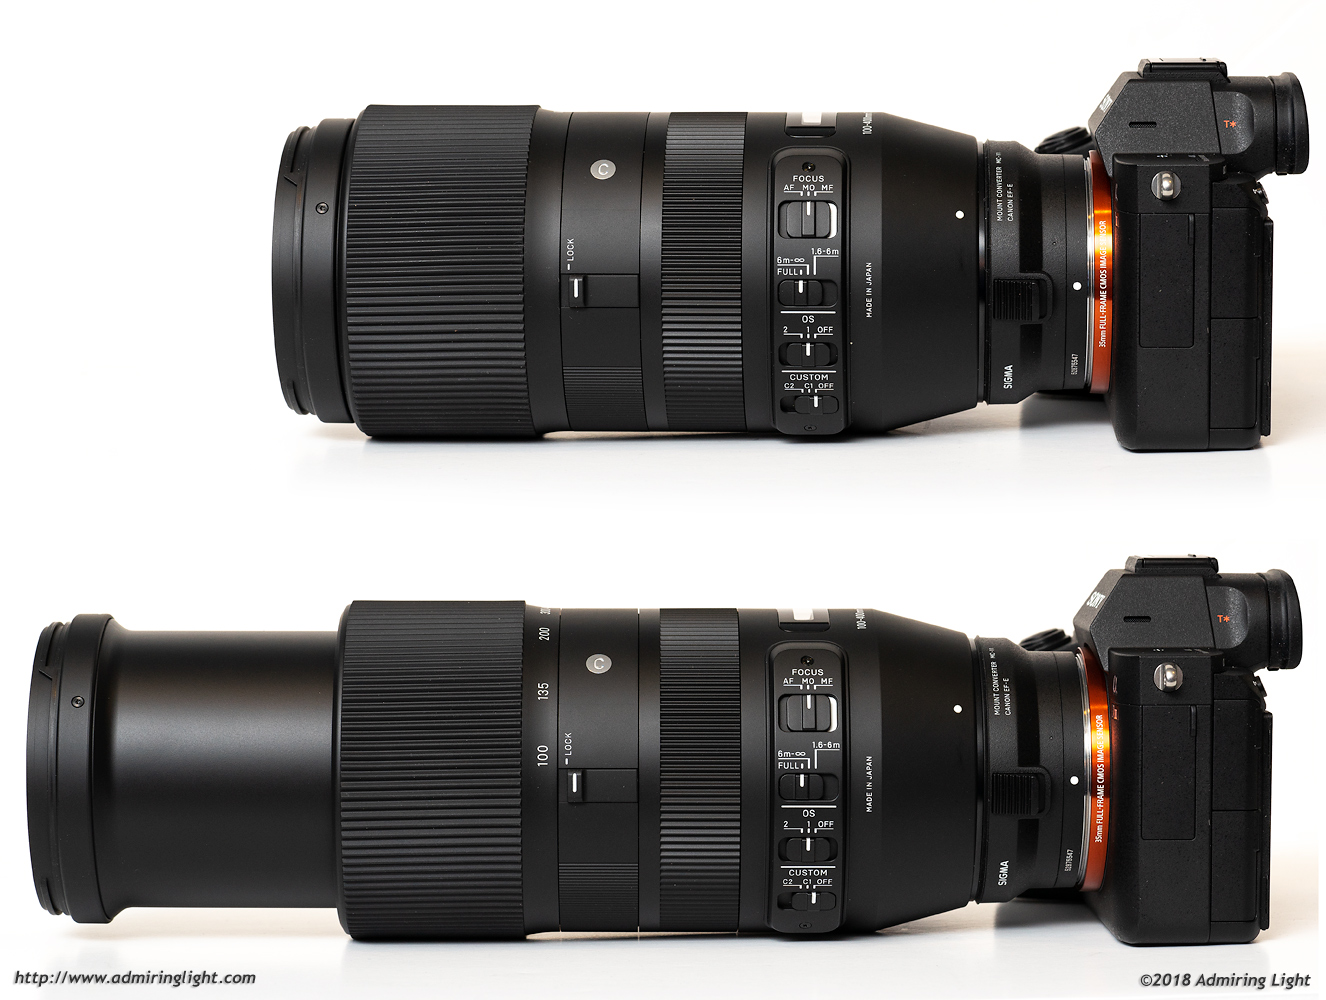 The Sigma 100-400mm at the extremes of its zoom range